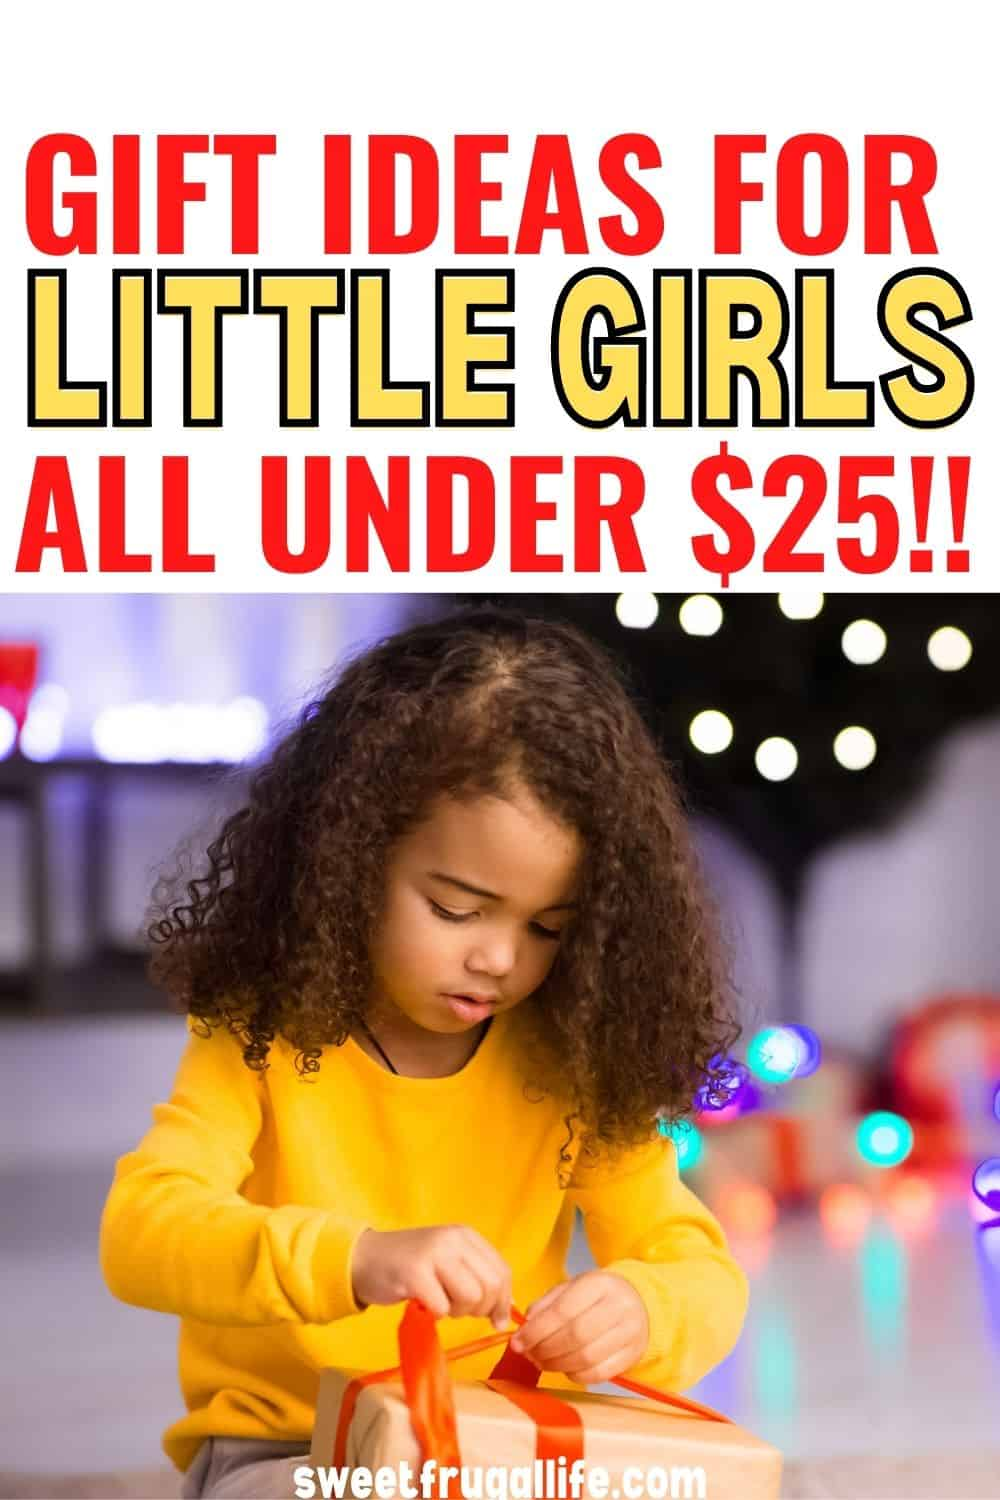 gift ideas for little girls - gift ideas for 5 year olds